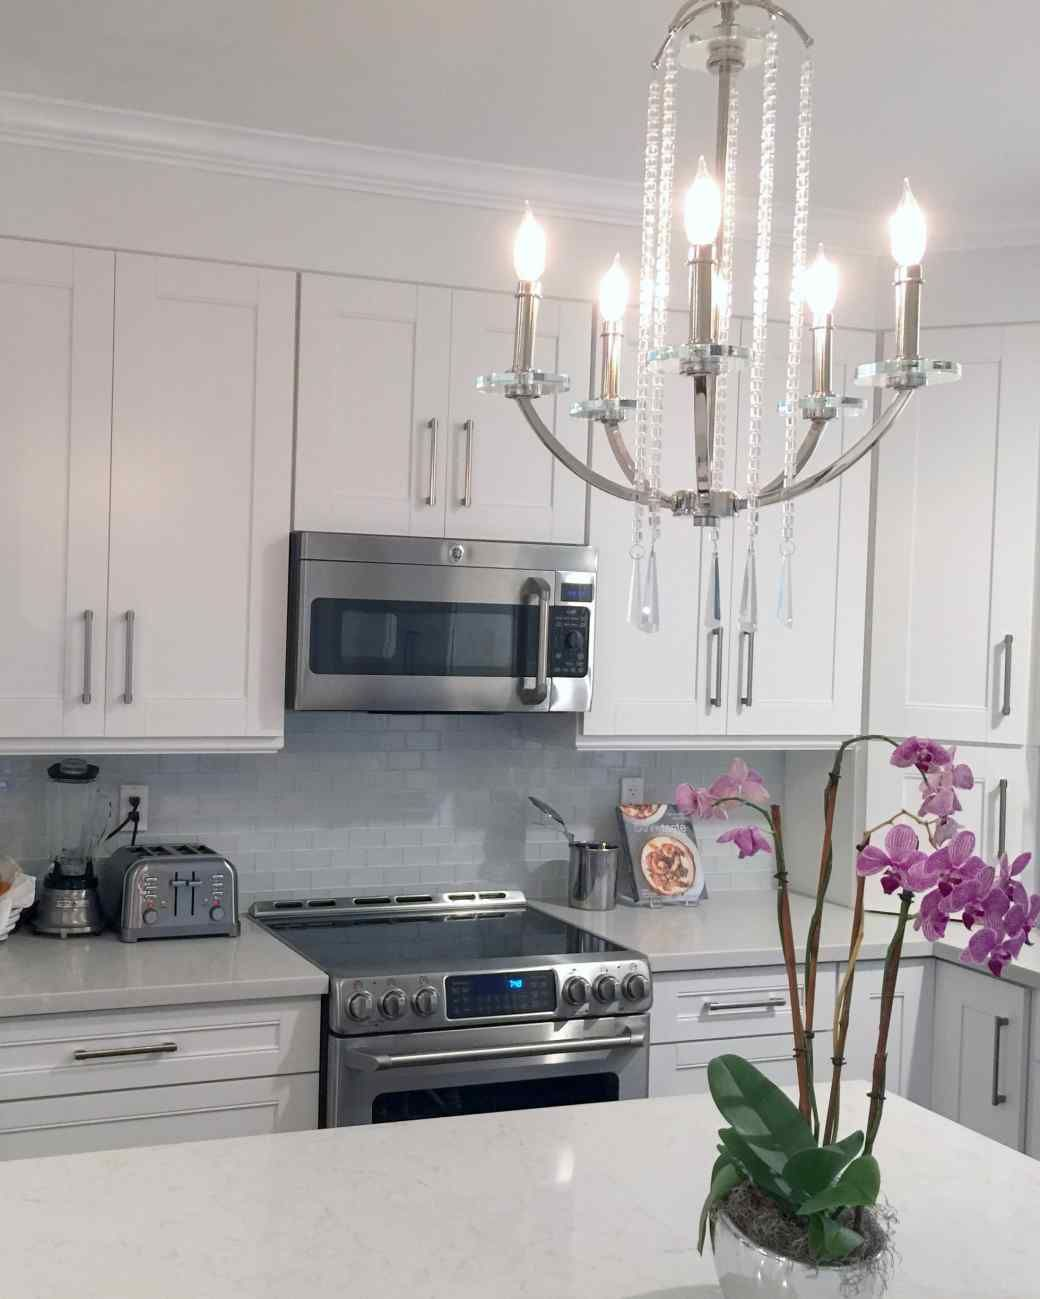 Kitchen Light Fixture Ideas: 6 Bright Kitchen Lighting Ideas: See How New Fixtures